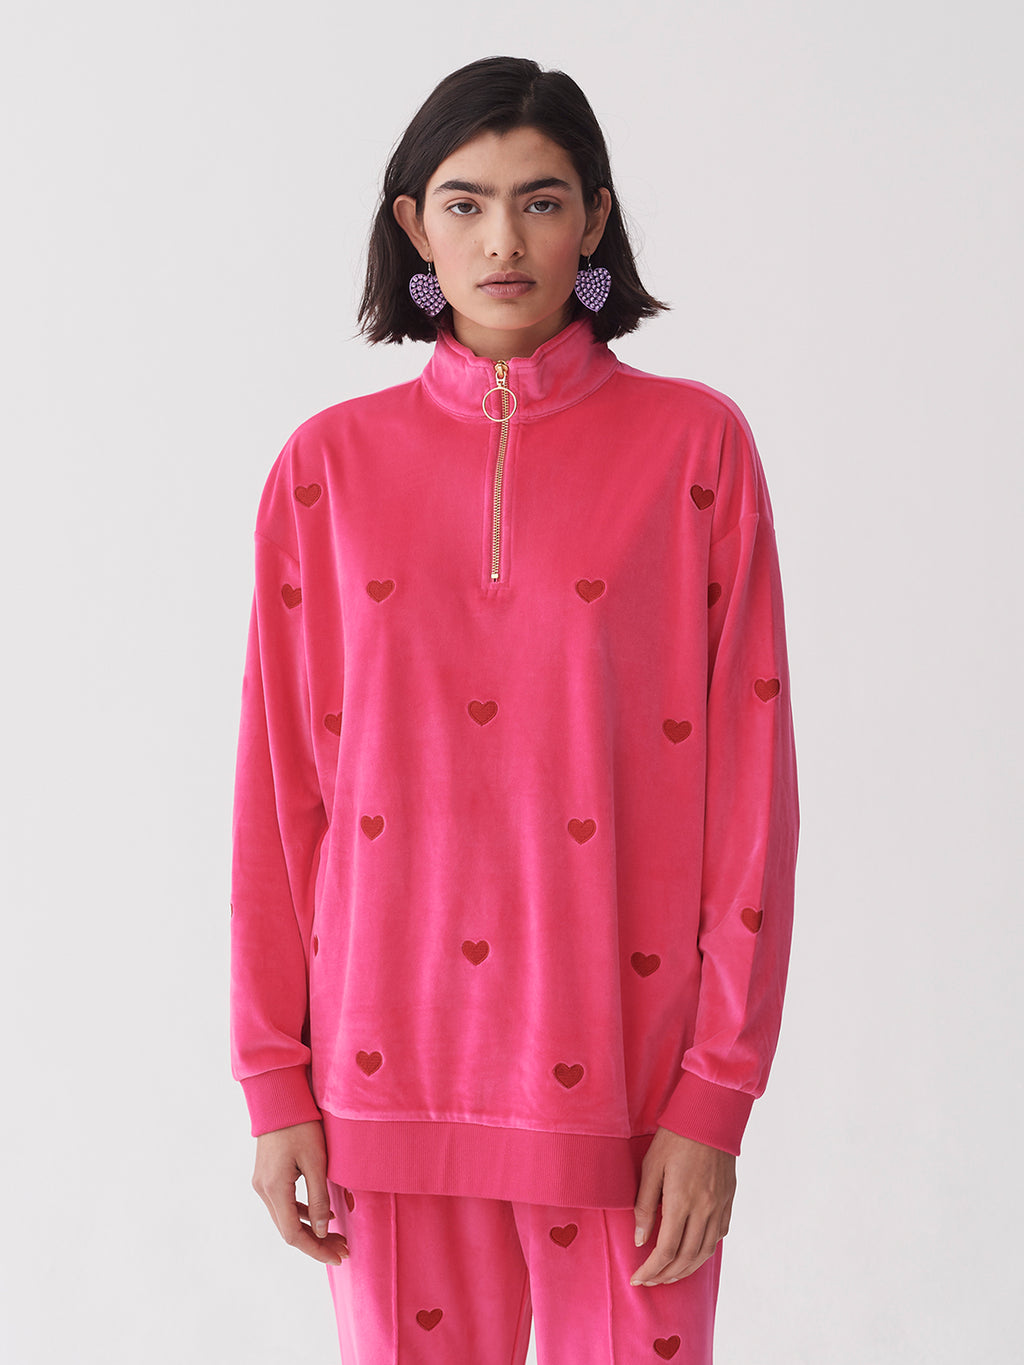 Lazy Oaf Velour Love Track Top